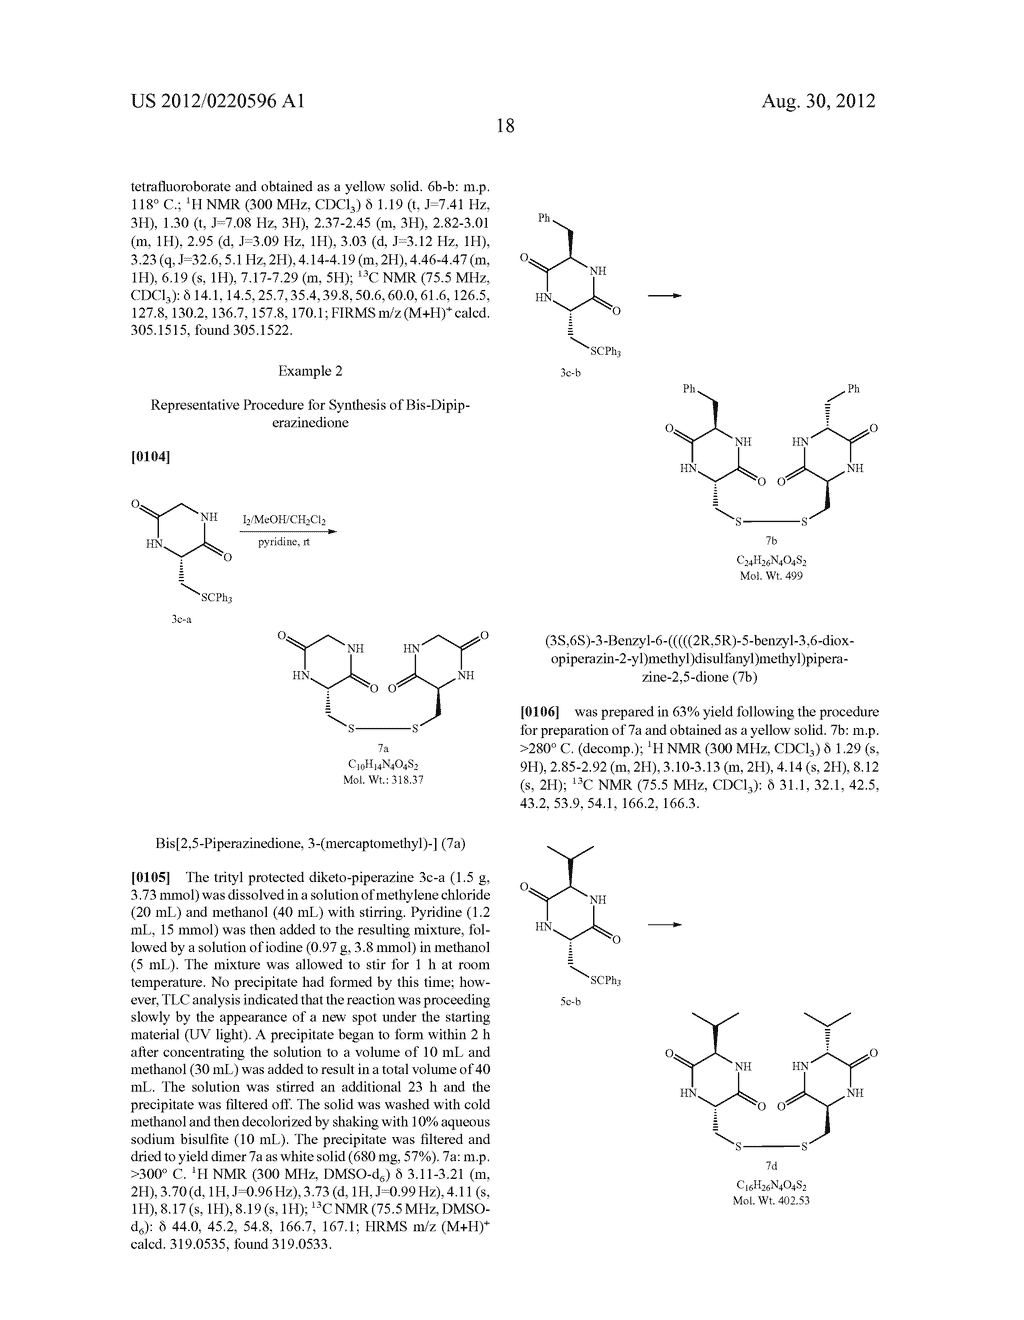 CYSTEINE AND CYSTINE PRODRUGS TO TREAT SCHIZOPHRENIA AND REDUCE DRUG     CRAVINGS - diagram, schematic, and image 27